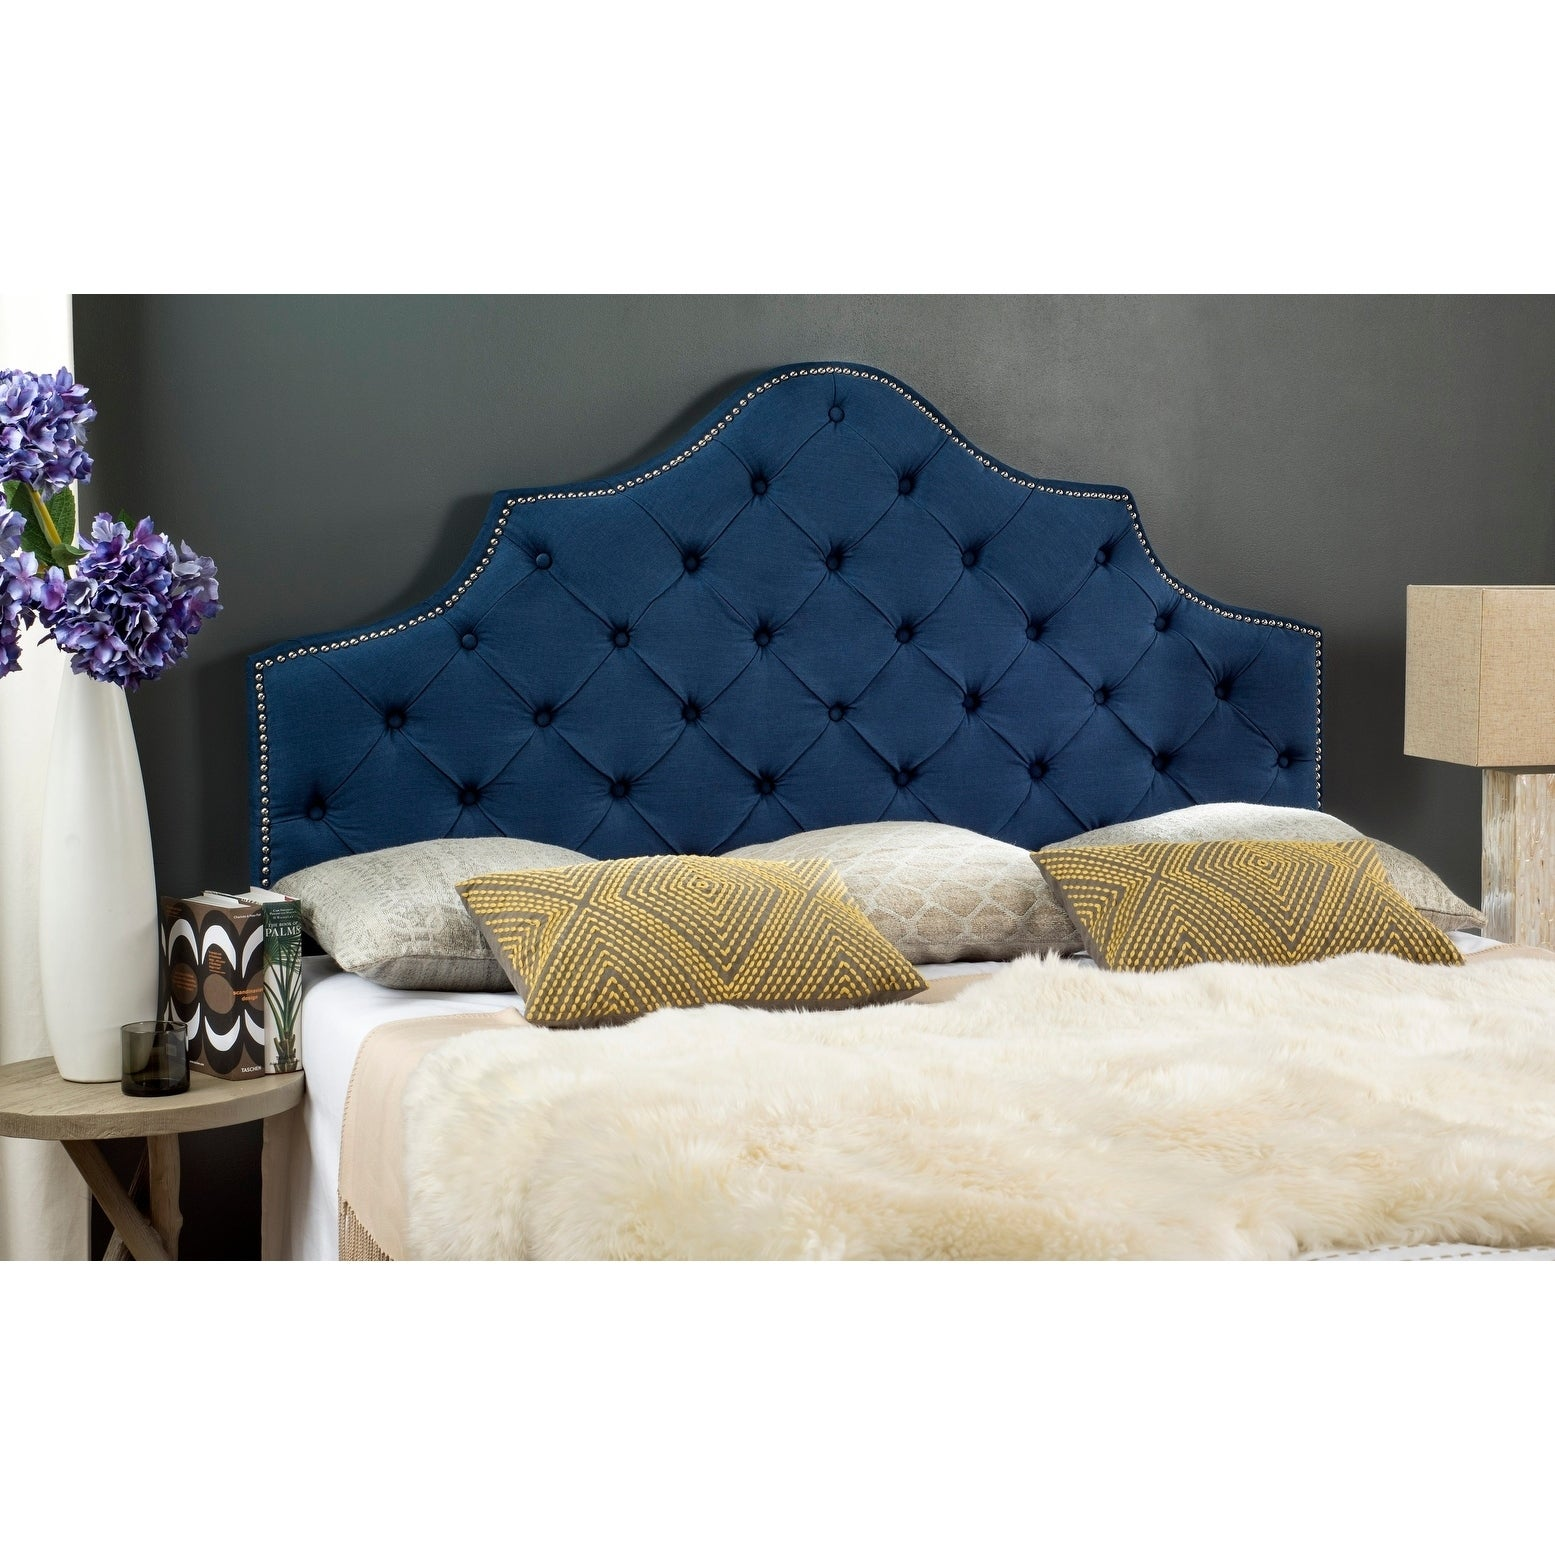 Picture of: Shop Safavieh Arebelle Steel Blue Upholstered Tufted Headboard Silver Nailhead King Overstock 12014924